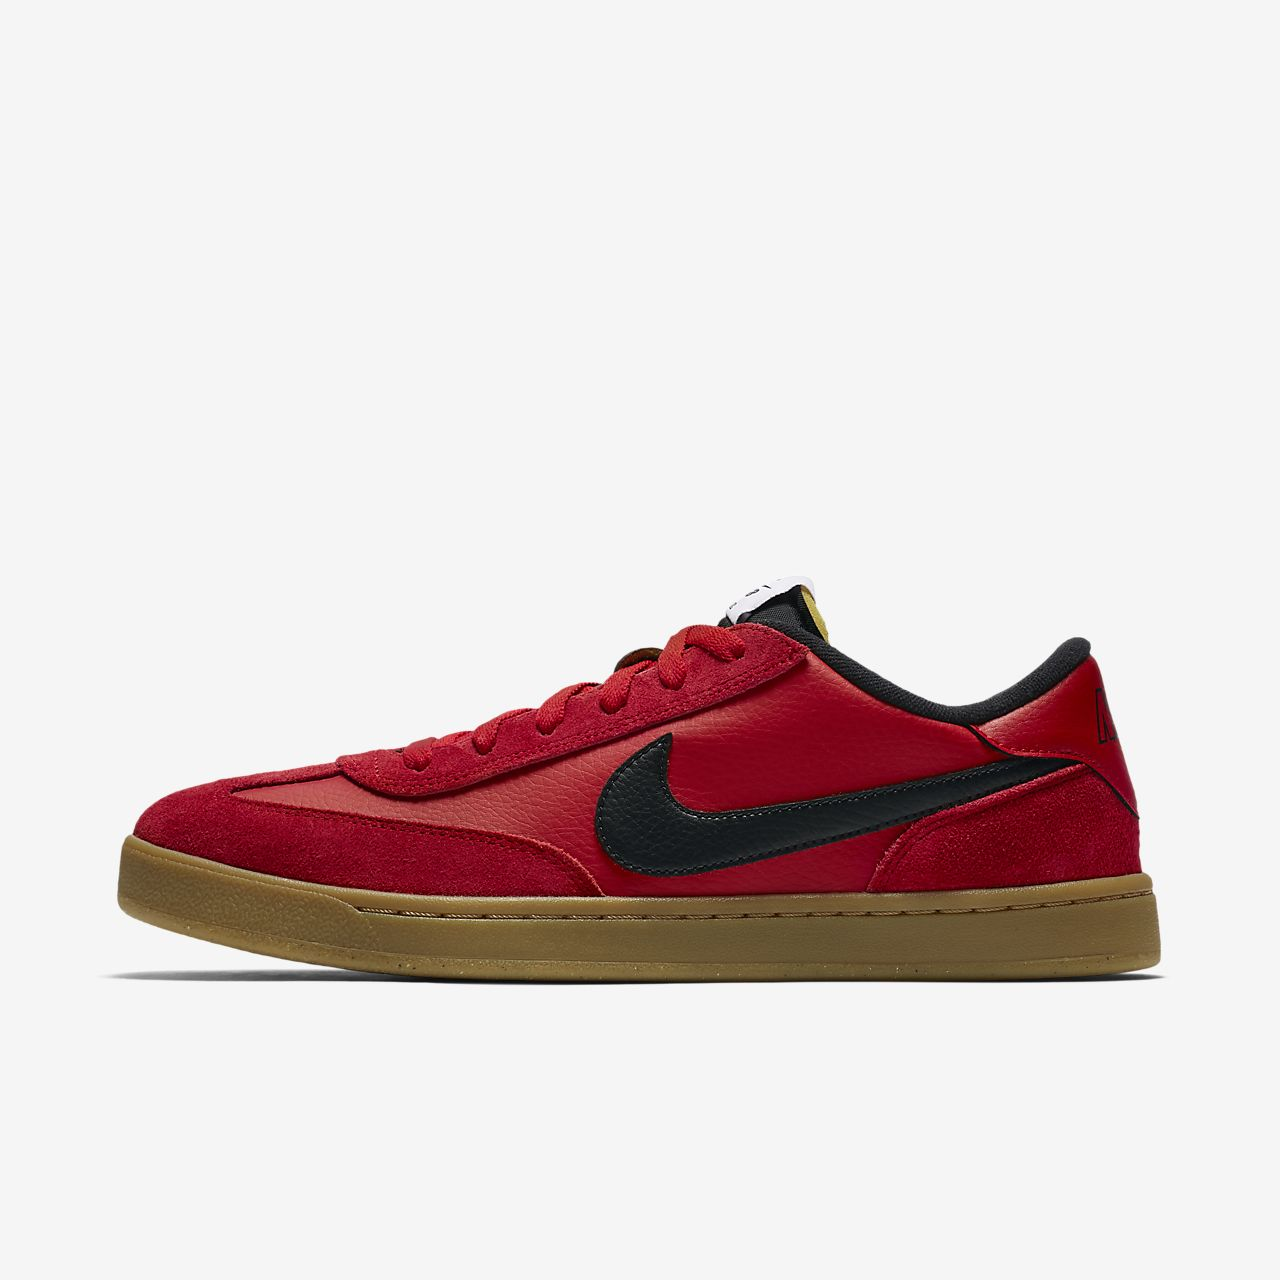 New Men's Nike SB FC Classic Size 6.5 Team Red White Skateboarding Shoes